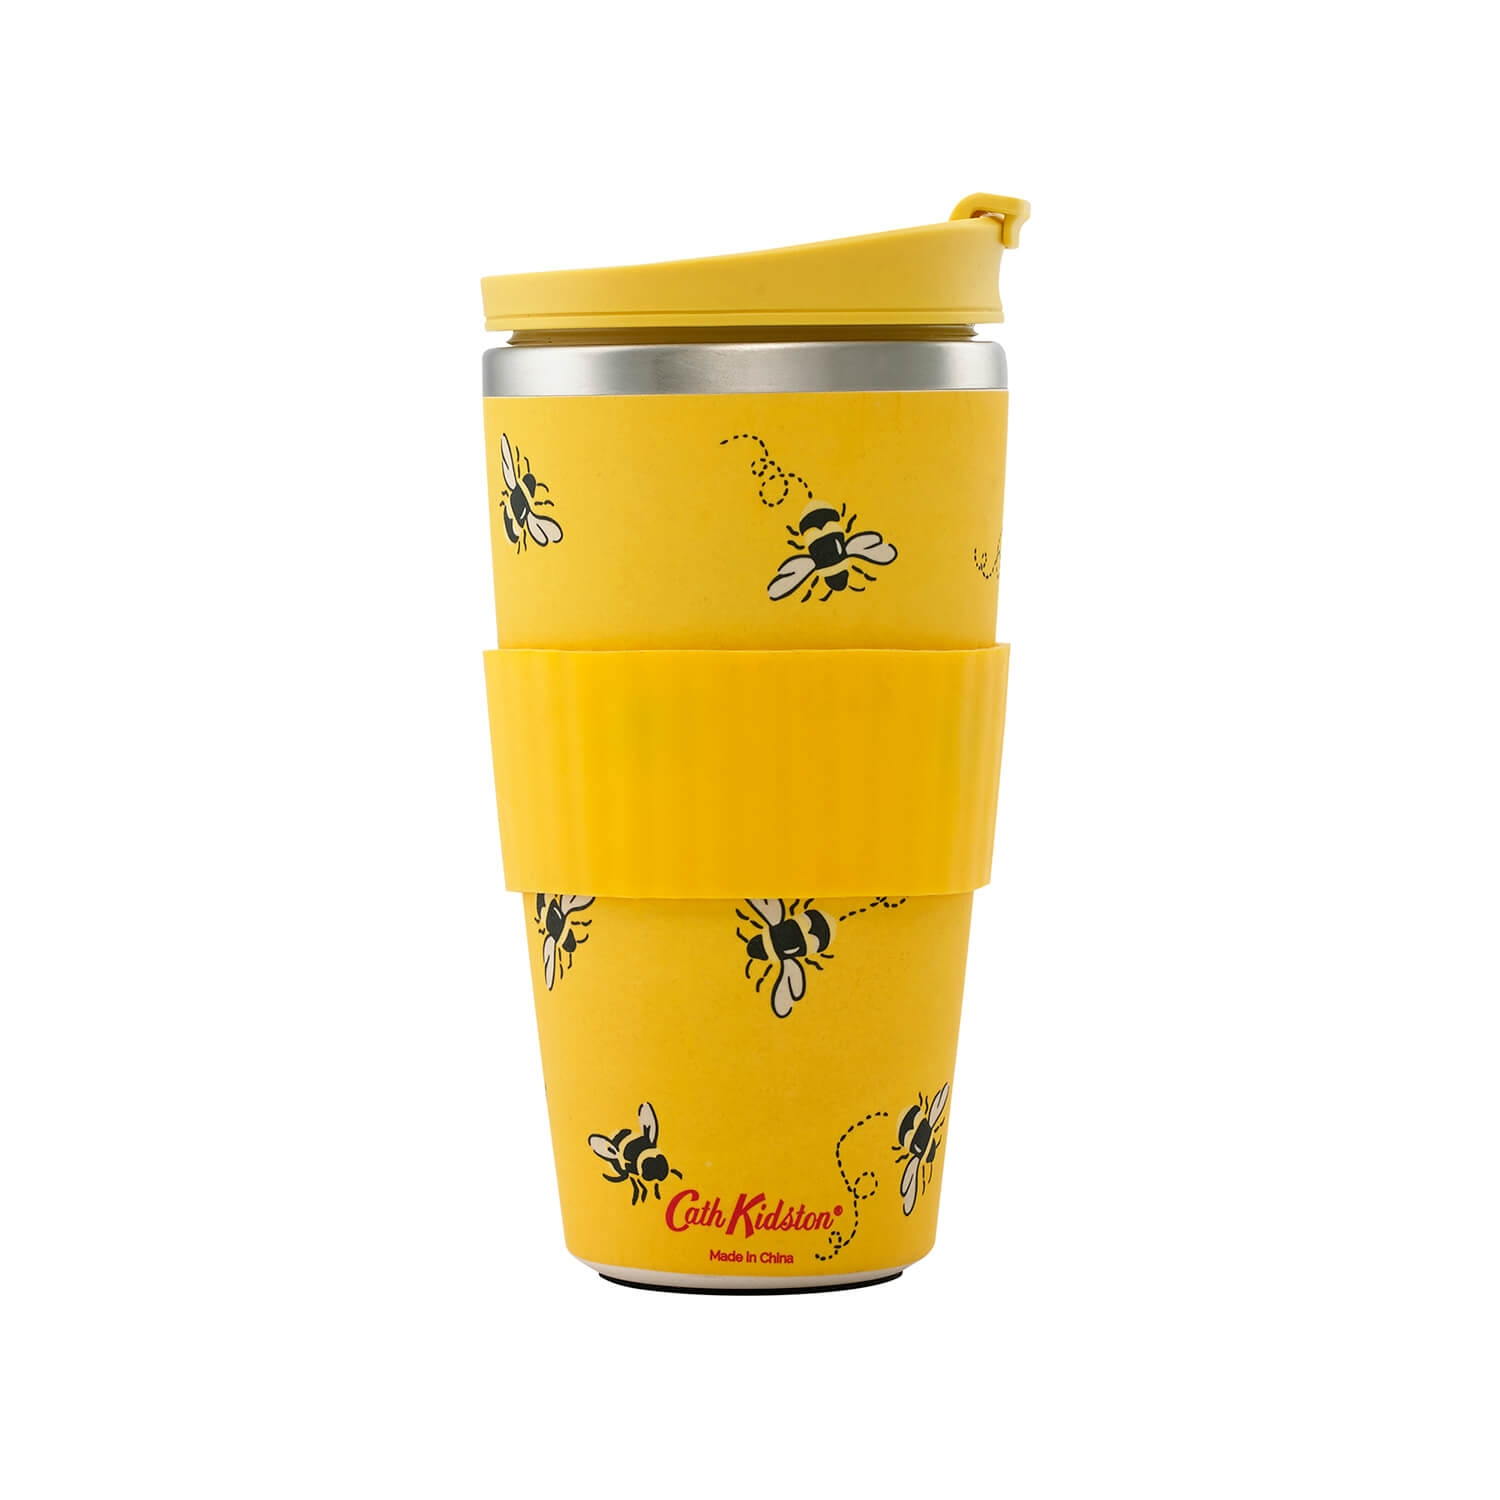 Image of Cath Kidston, Bee, Travel Cup, Cream